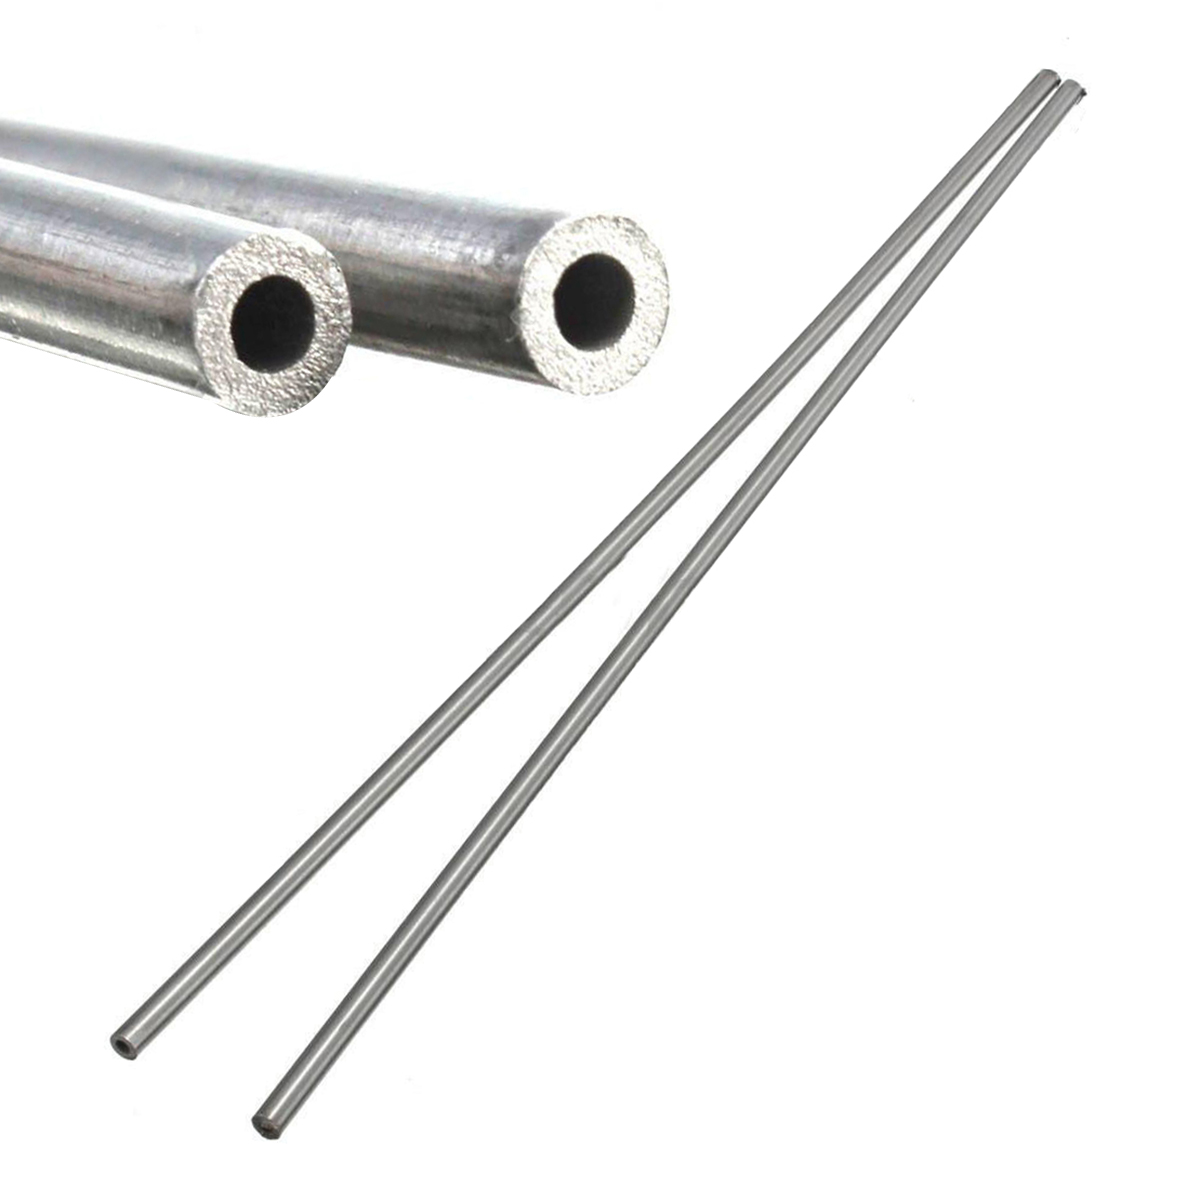 2pcs 304 Stainless Steel Capillary Tube Silver 4mm OD 3mm ID 250mm Length Use For Chemical Industry 5pcs 304 stainless steel capillary tube 3mm od 2mm id 250mm length silver for hardware accessories